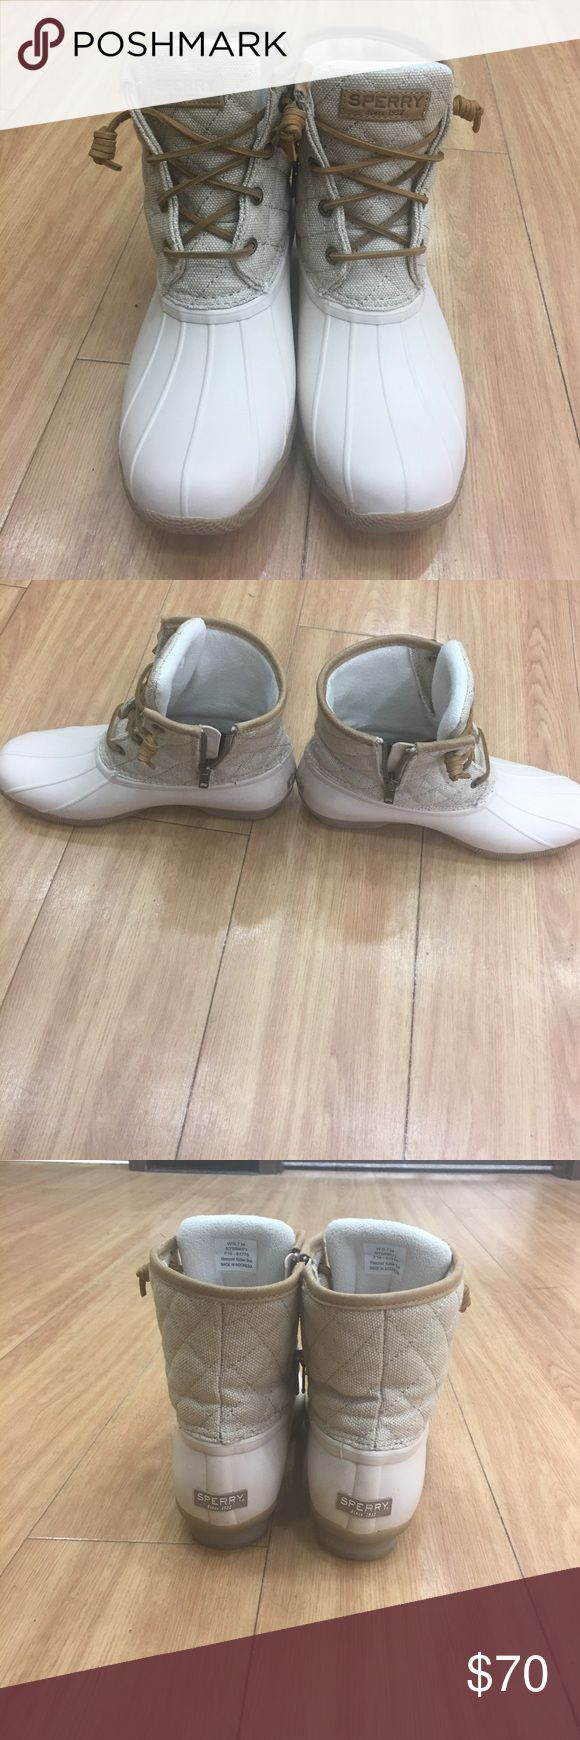 Sperry top sider Great condition , only worn a few times Sperry Shoes Ankle Boots & Booties